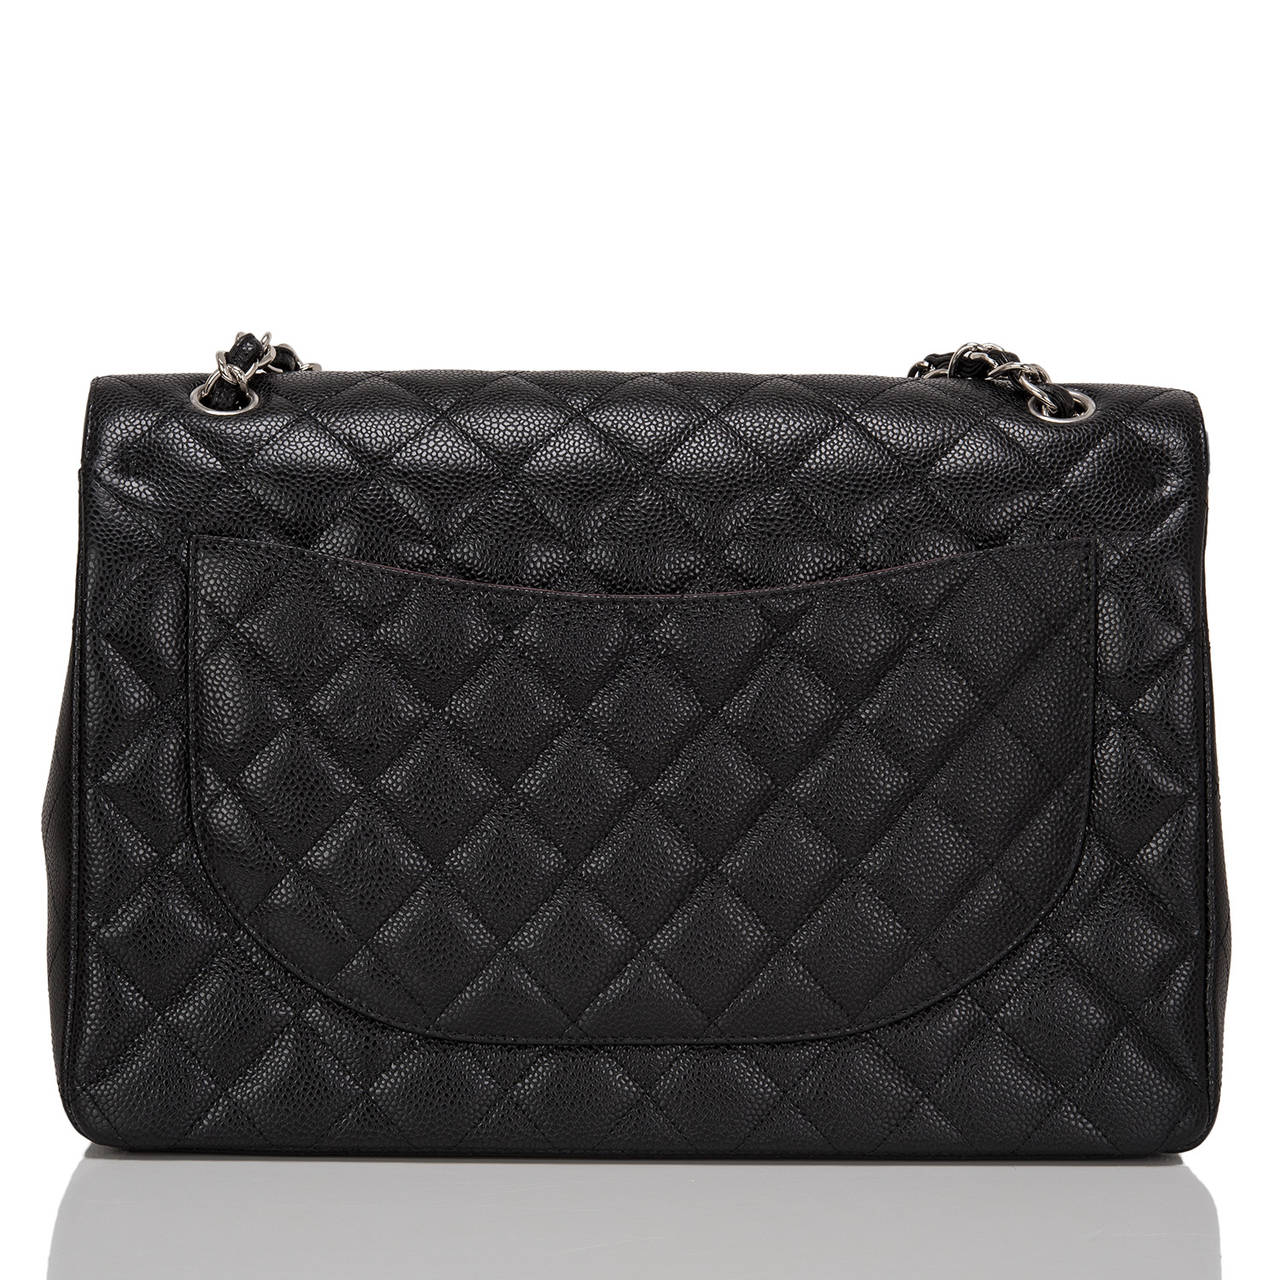 Chanel Black Quilted Caviar Maxi Classic Double Flap Bag In New never worn Condition For Sale In New York, NY